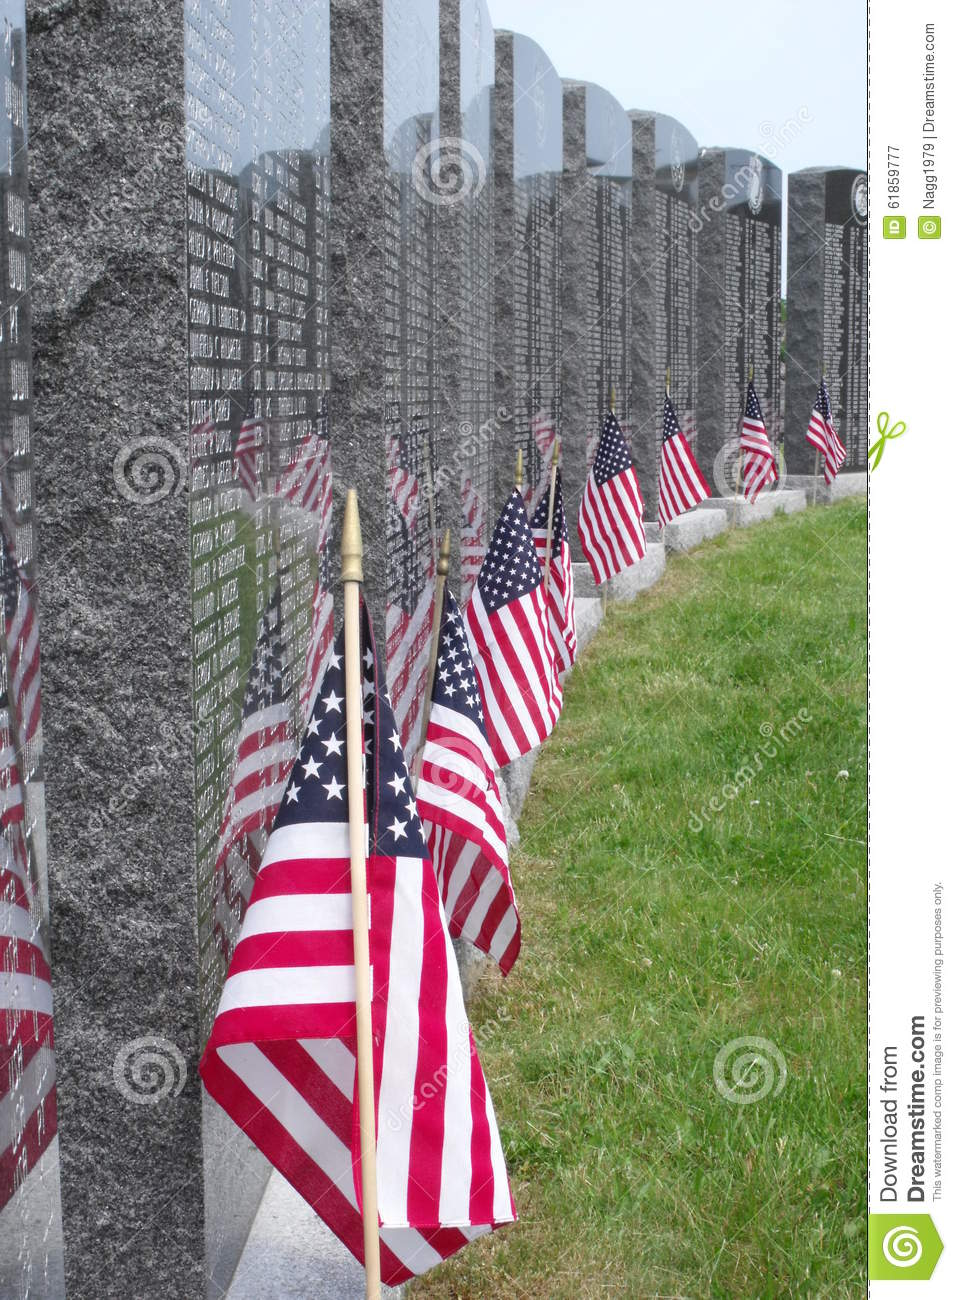 Reflections On Memorial Day >> Memorial Reflections Editorial Photography Image Of Flagged